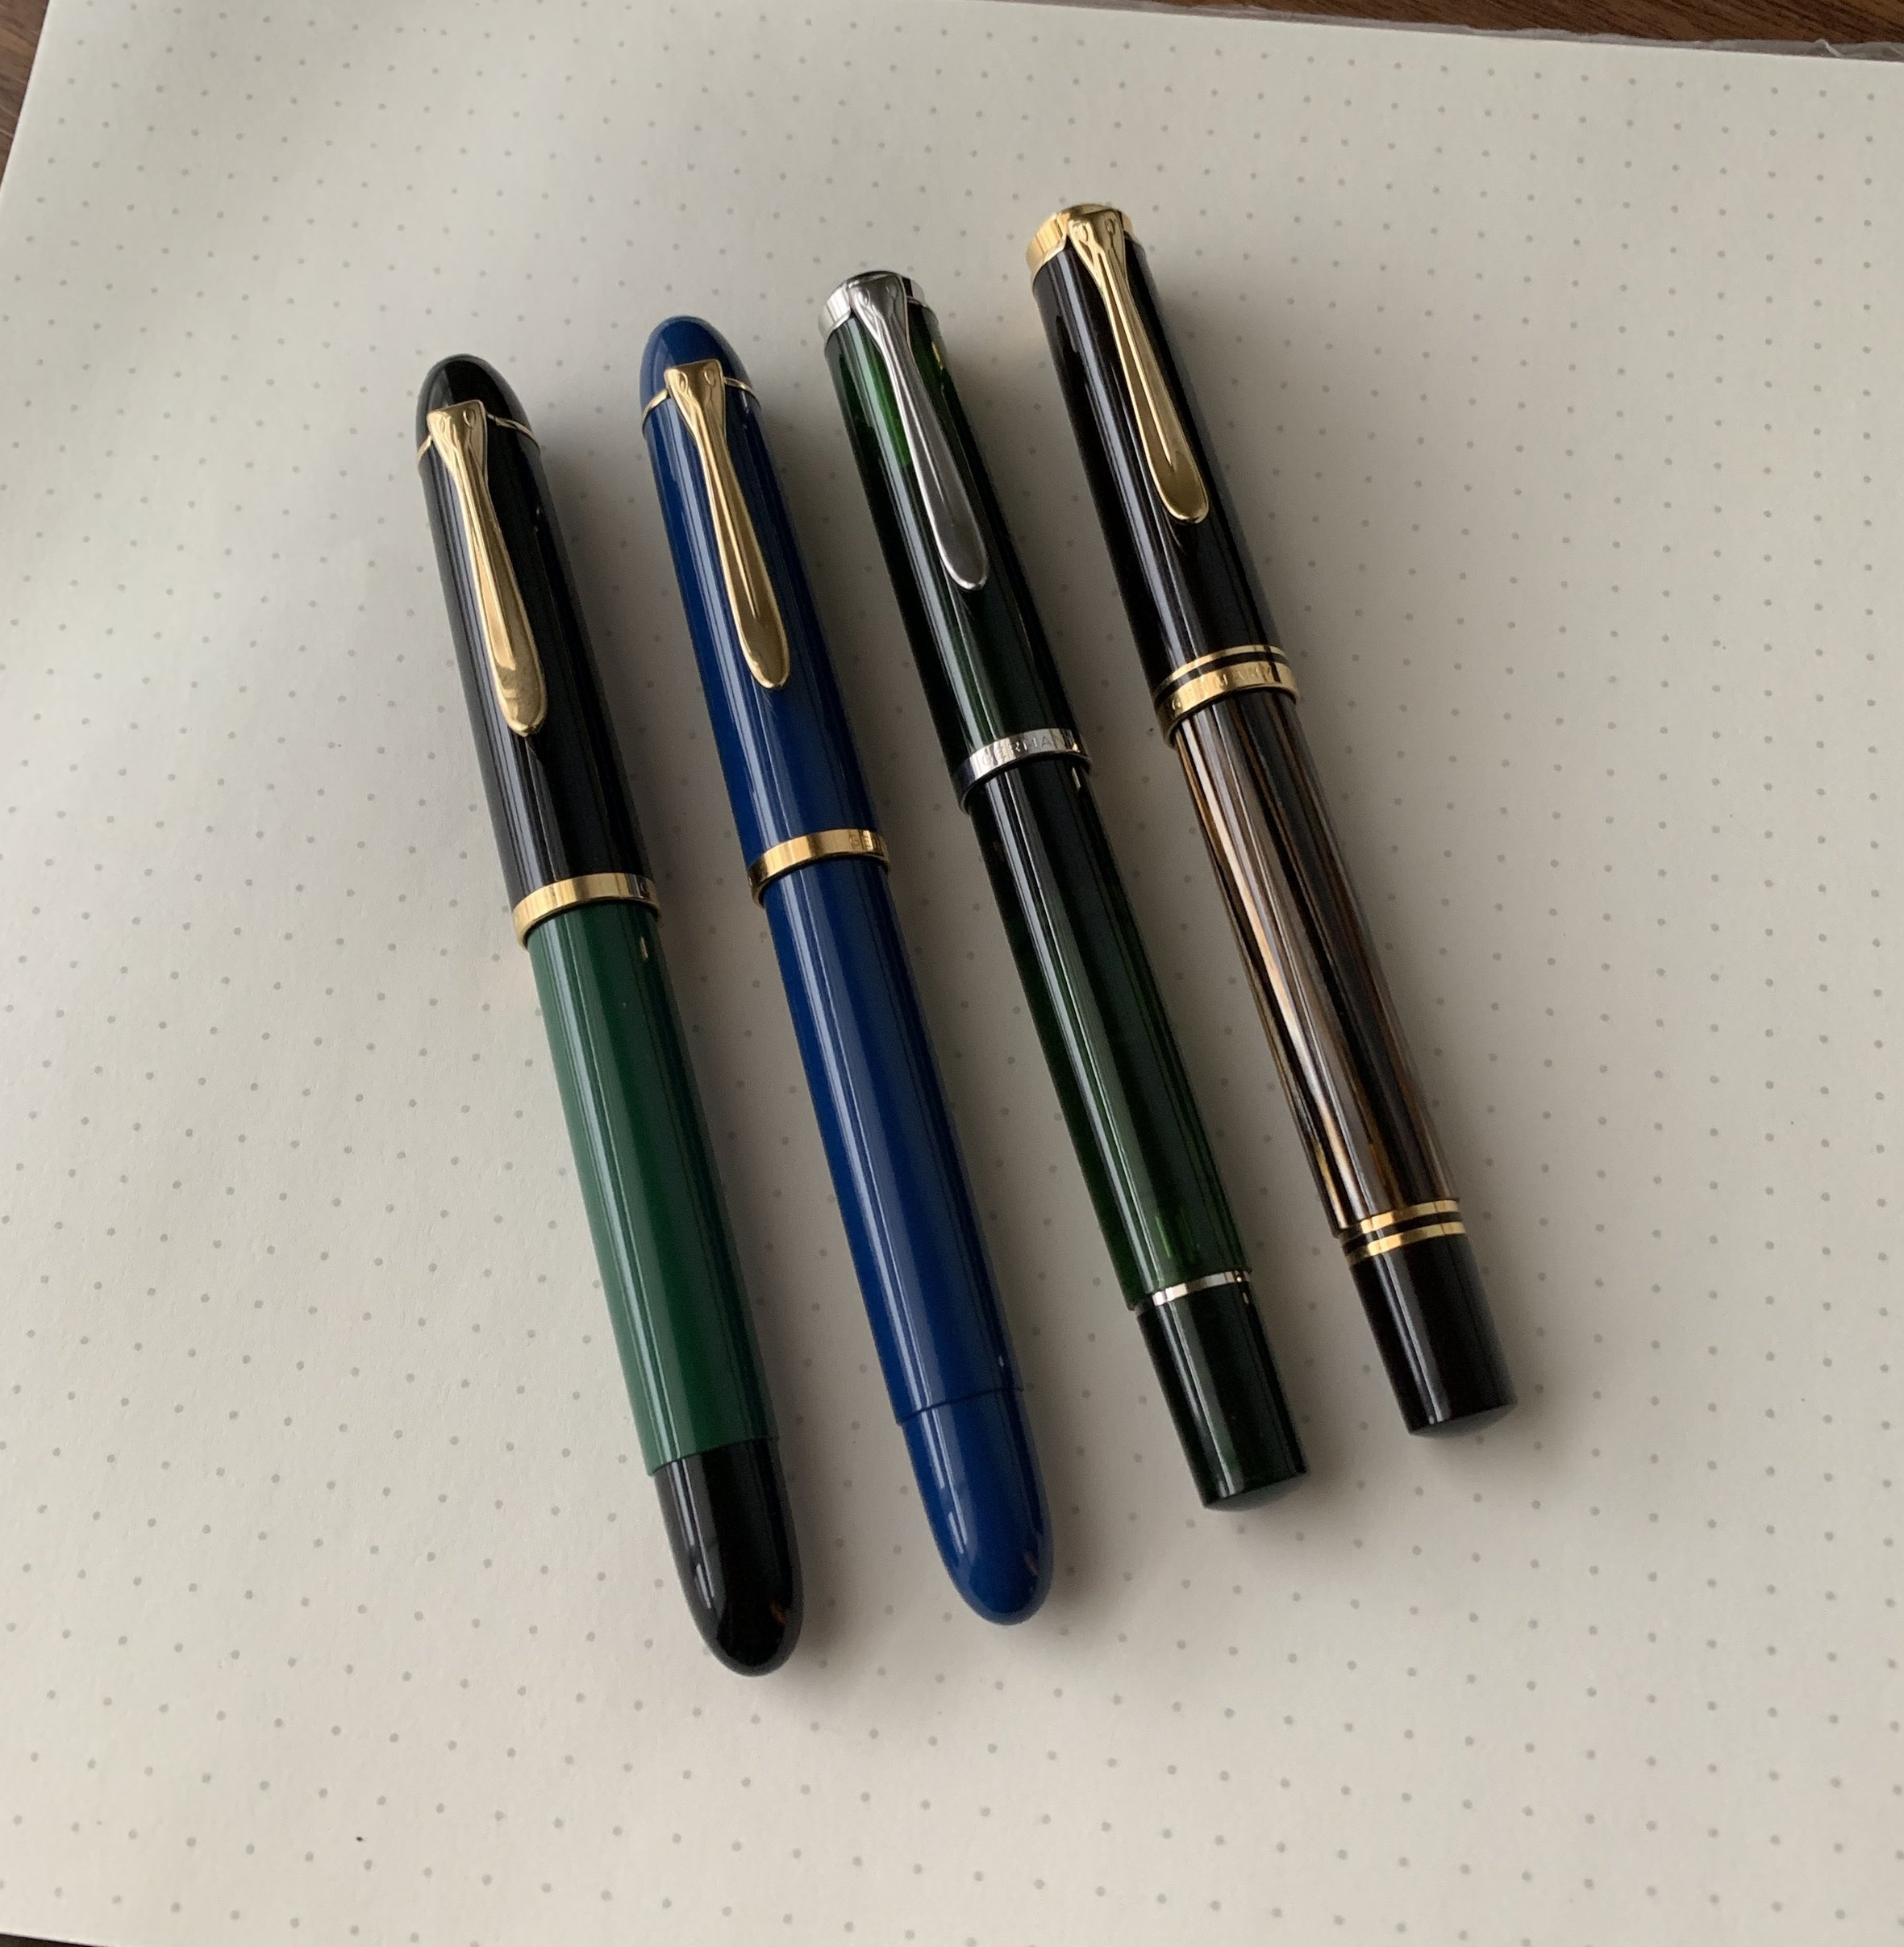 A comparison shot of (from left) the Pelikan M120 Green-Black; the M120 Iconic Blue; the M205 Olivine; and the M400 Brown Tortoise.